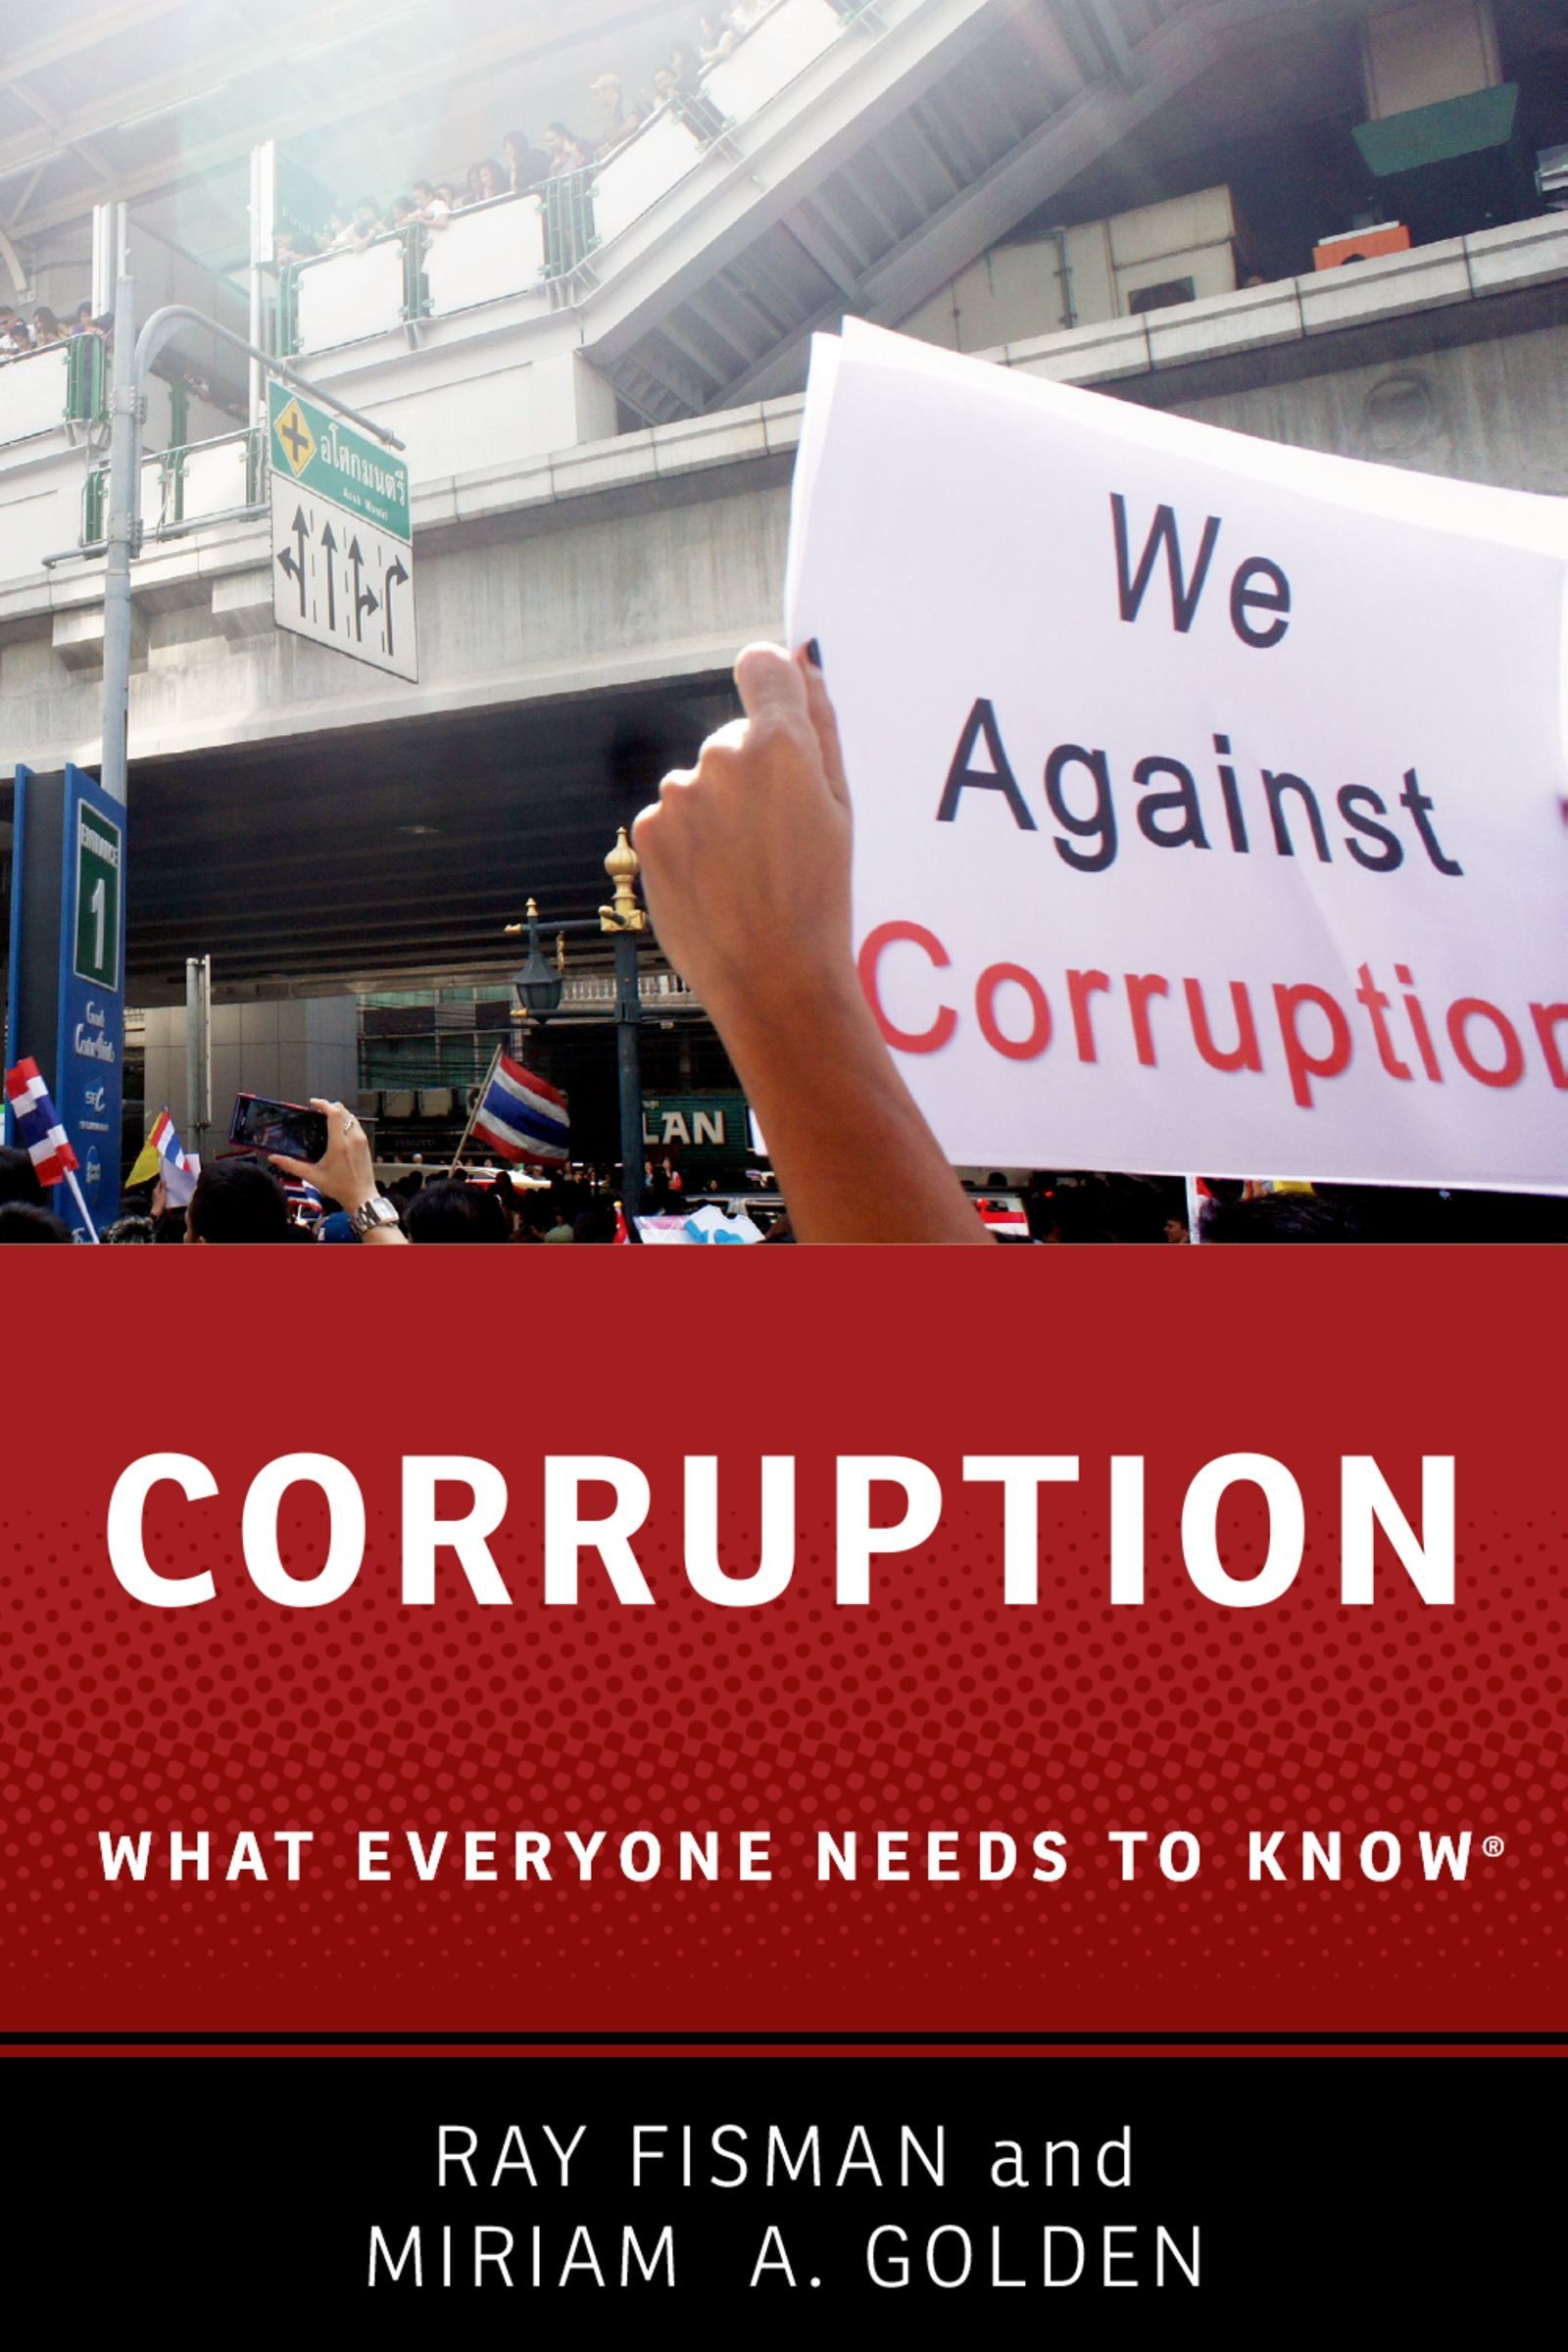 Amazon.com: Corruption: What Everyone Needs to Know® eBook : Fisman, Ray,  Golden, Miriam A.: Kindle Store